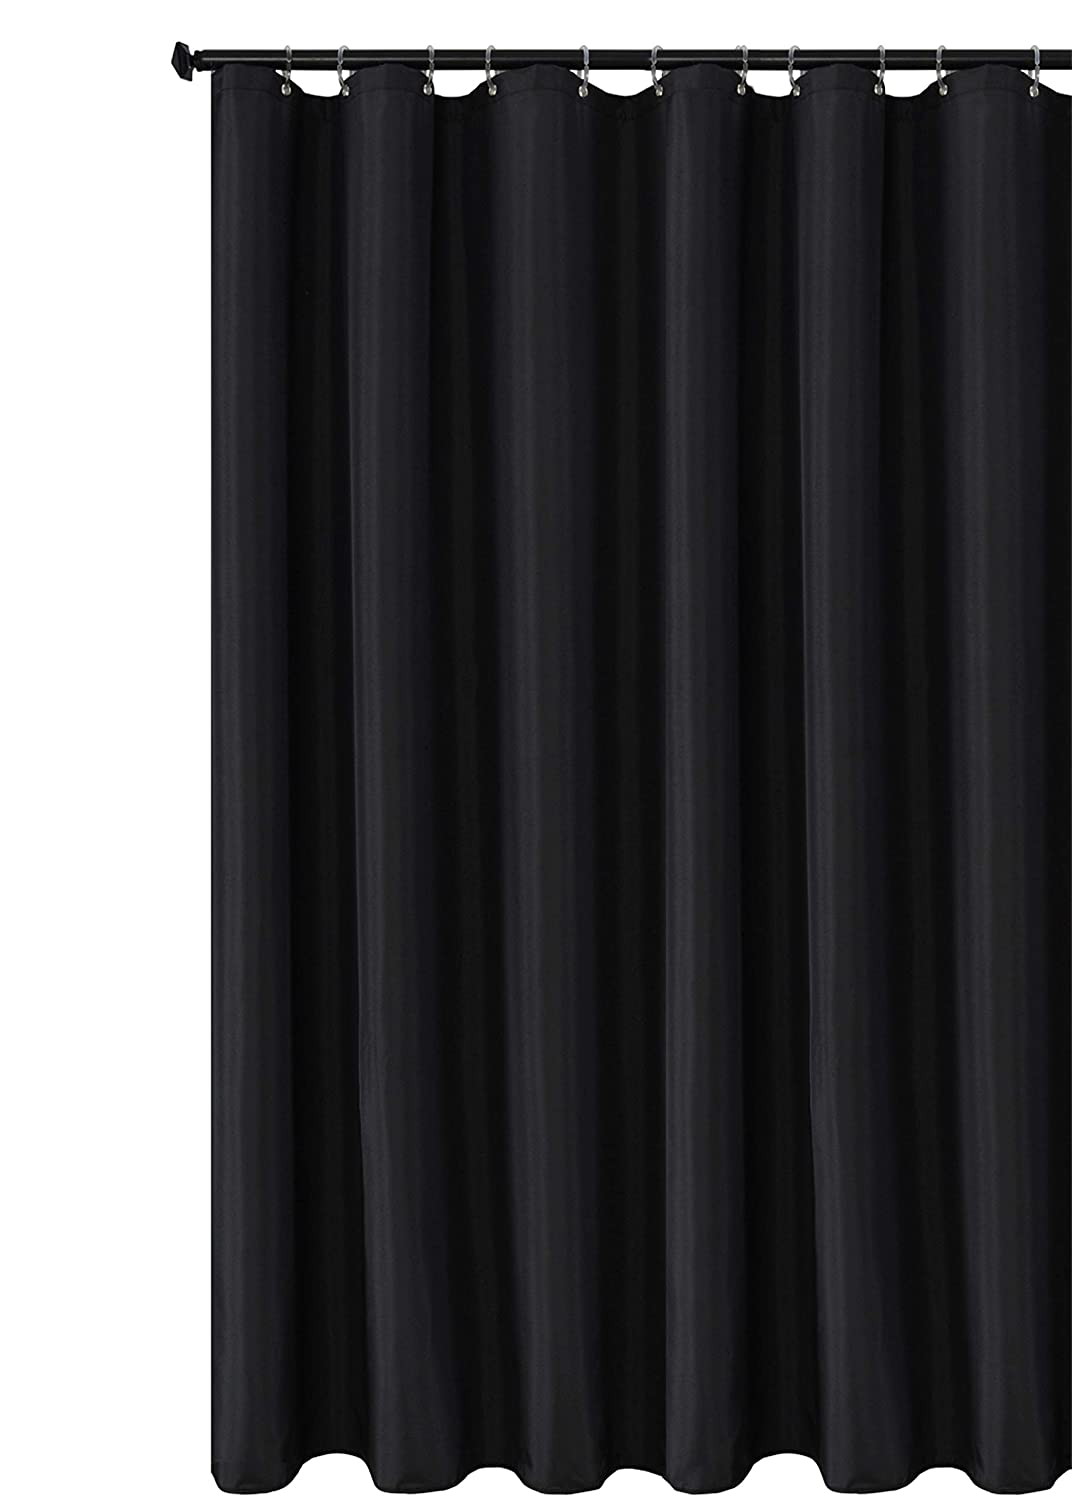 Biscaynebay Fabric Shower Curtain Liners Water Resistant Bathroom Curtain Liner 72 by 72 Inches Black